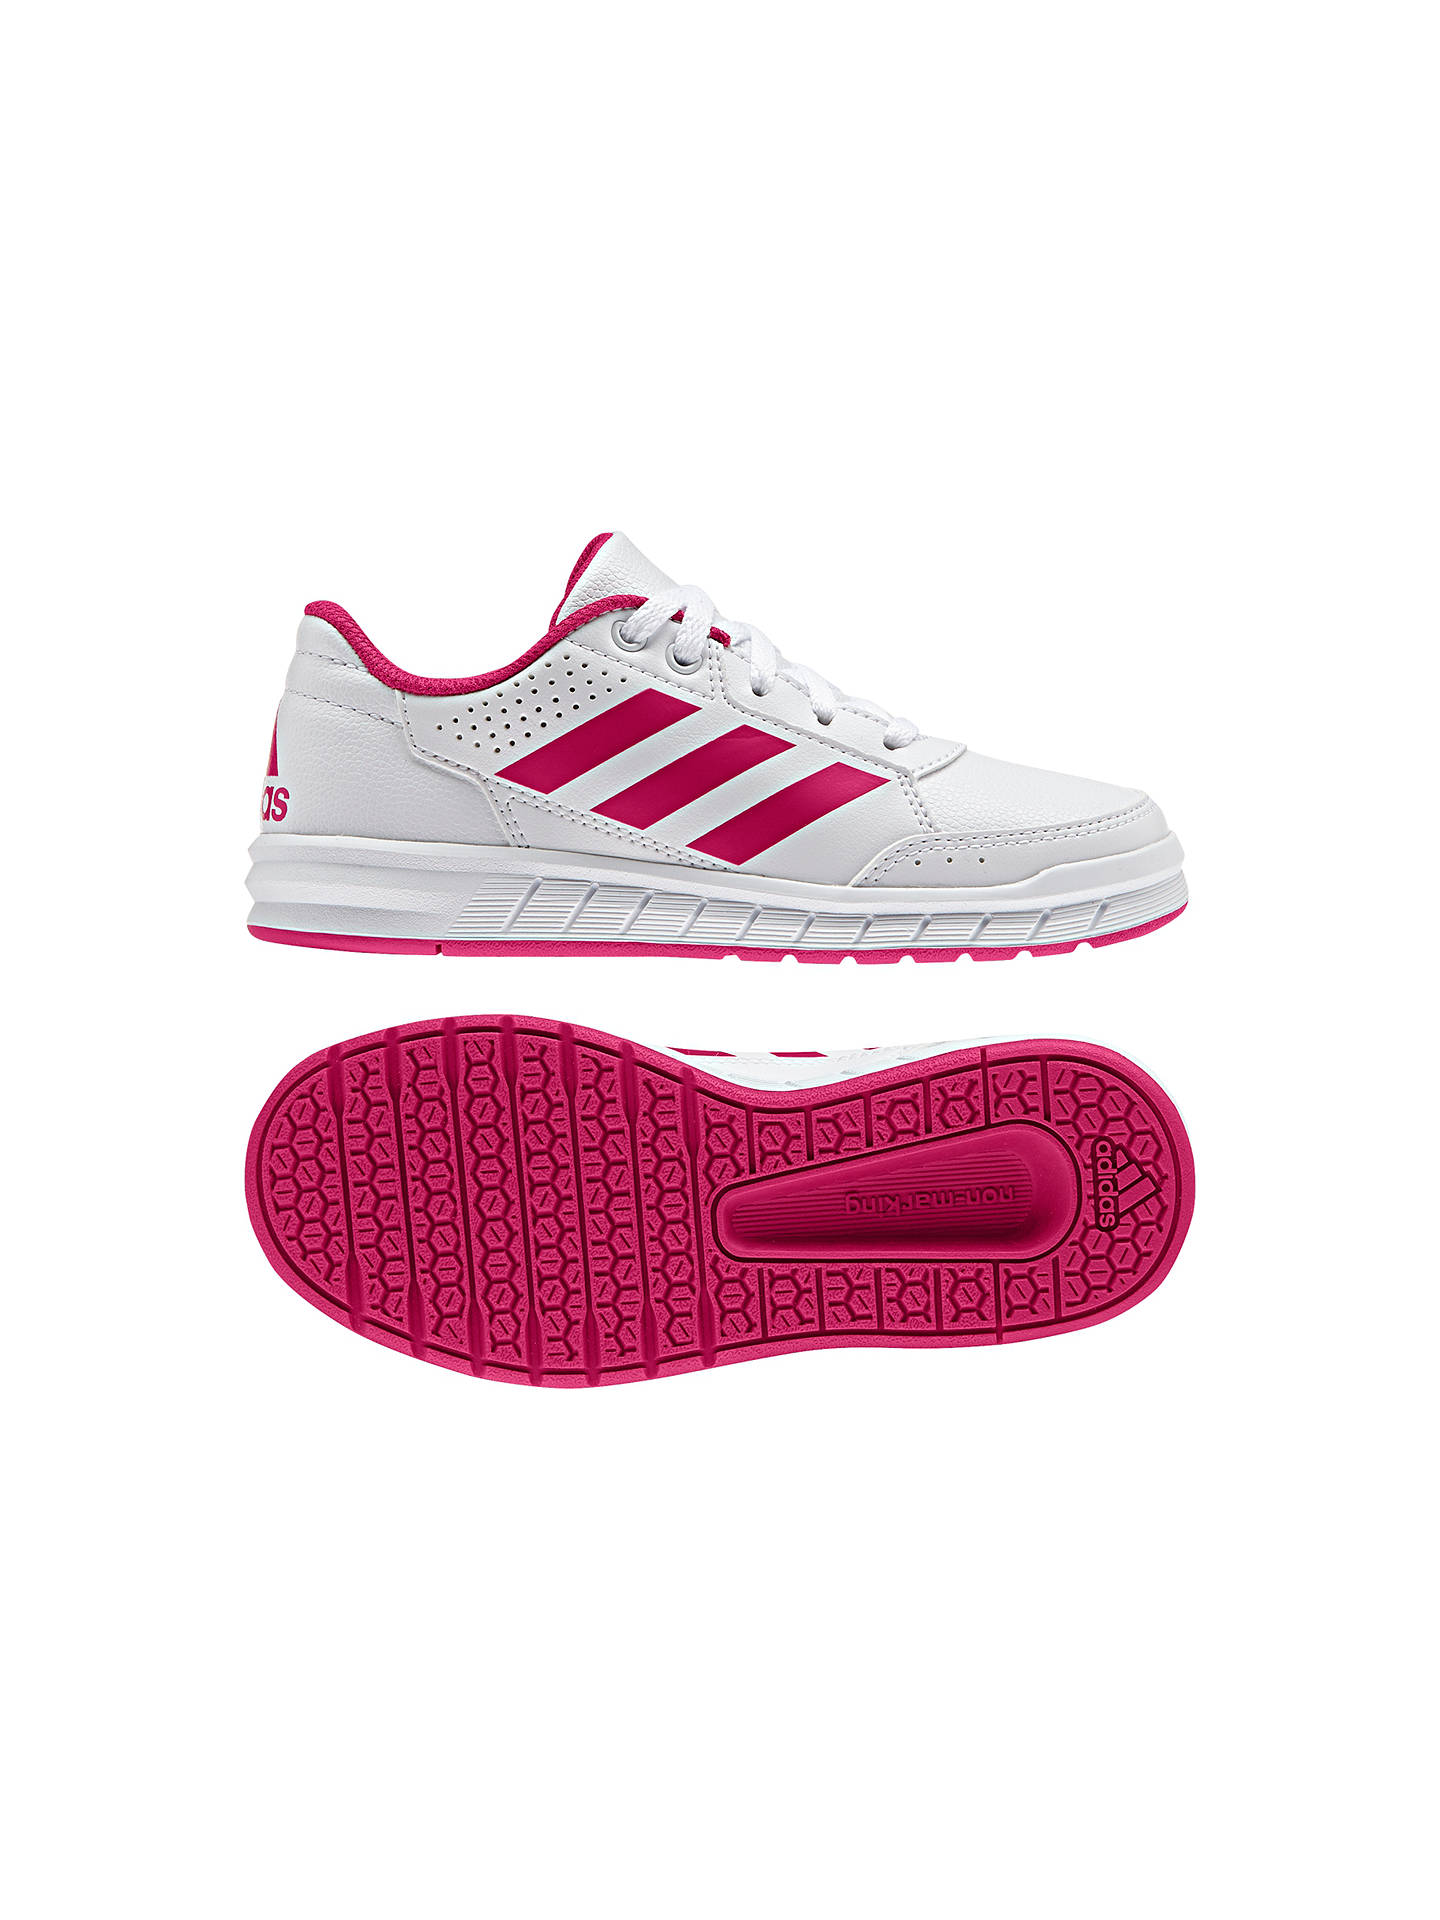 Buy adidas Children's Alta Sport CF Lace Up Trainers, White/Pink, 3 Online at johnlewis.com